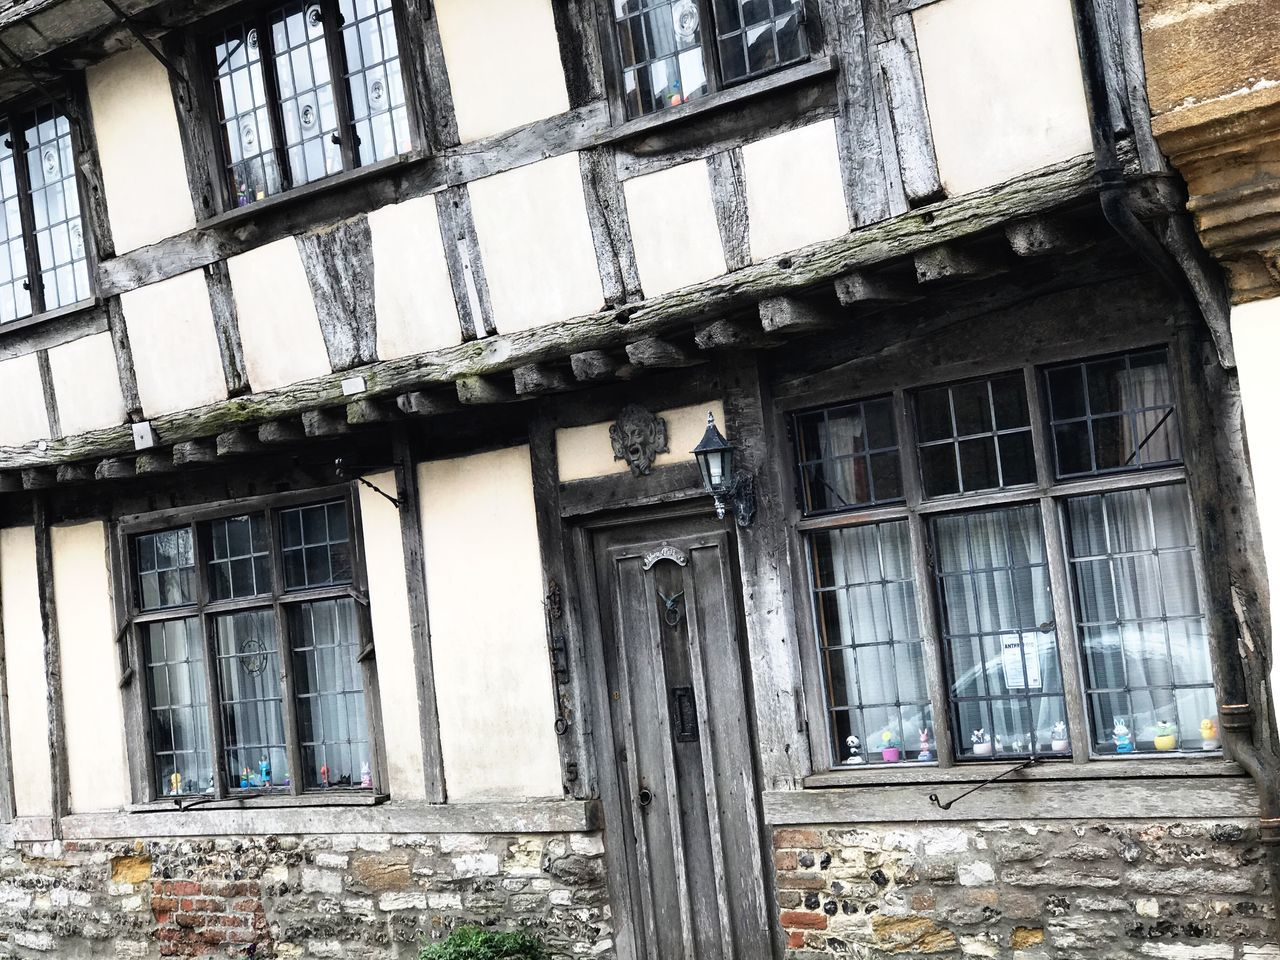 15th century Window Architecture Abandoned Damaged House Built Structure No People Indoors  Day